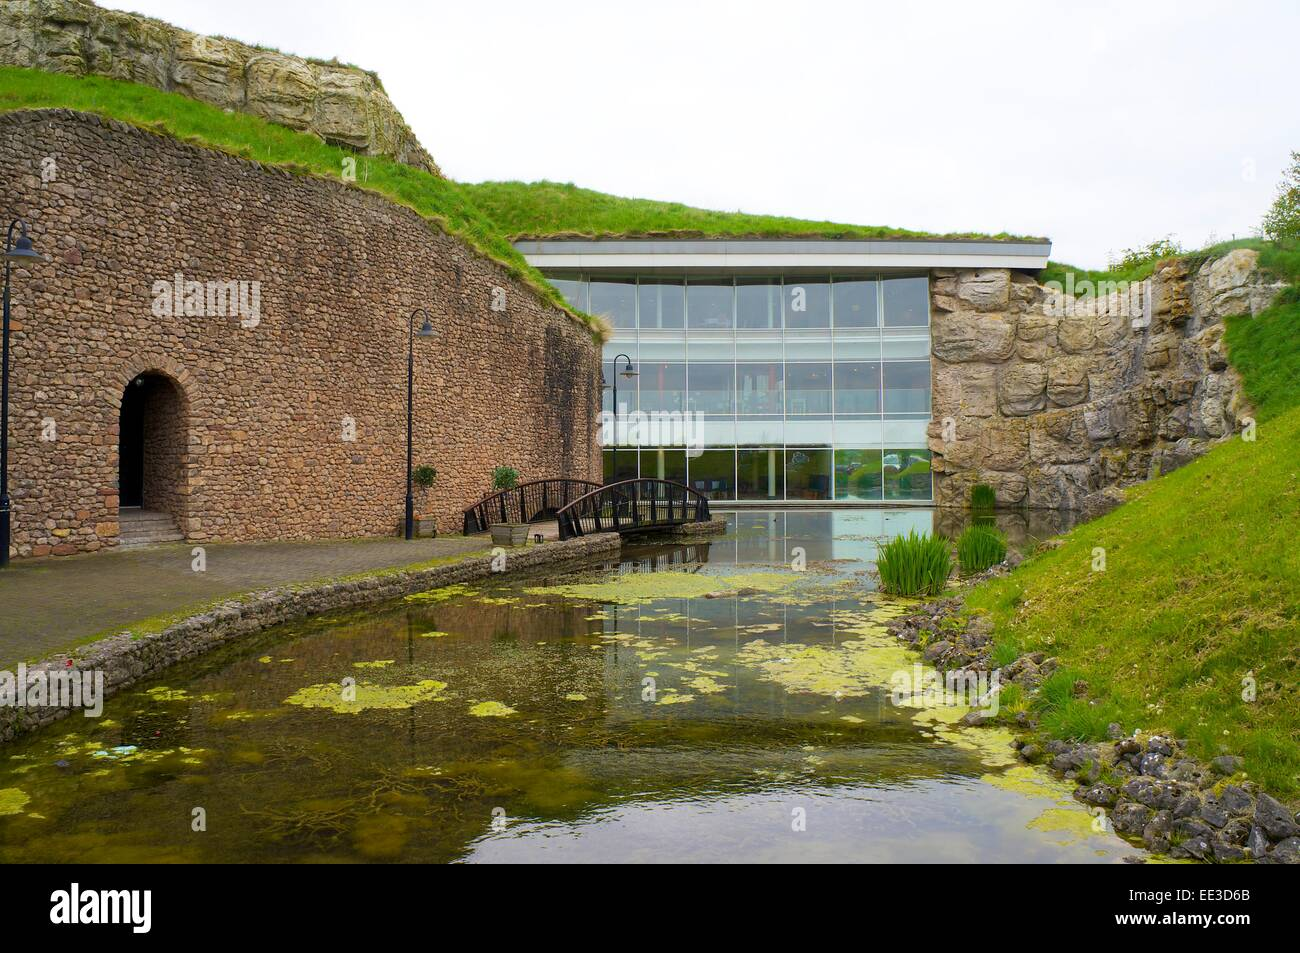 Rheged lakeland heritage centre's glass wall, Penrith, Eden Valley, Cumbria, England, UK. - Stock Image